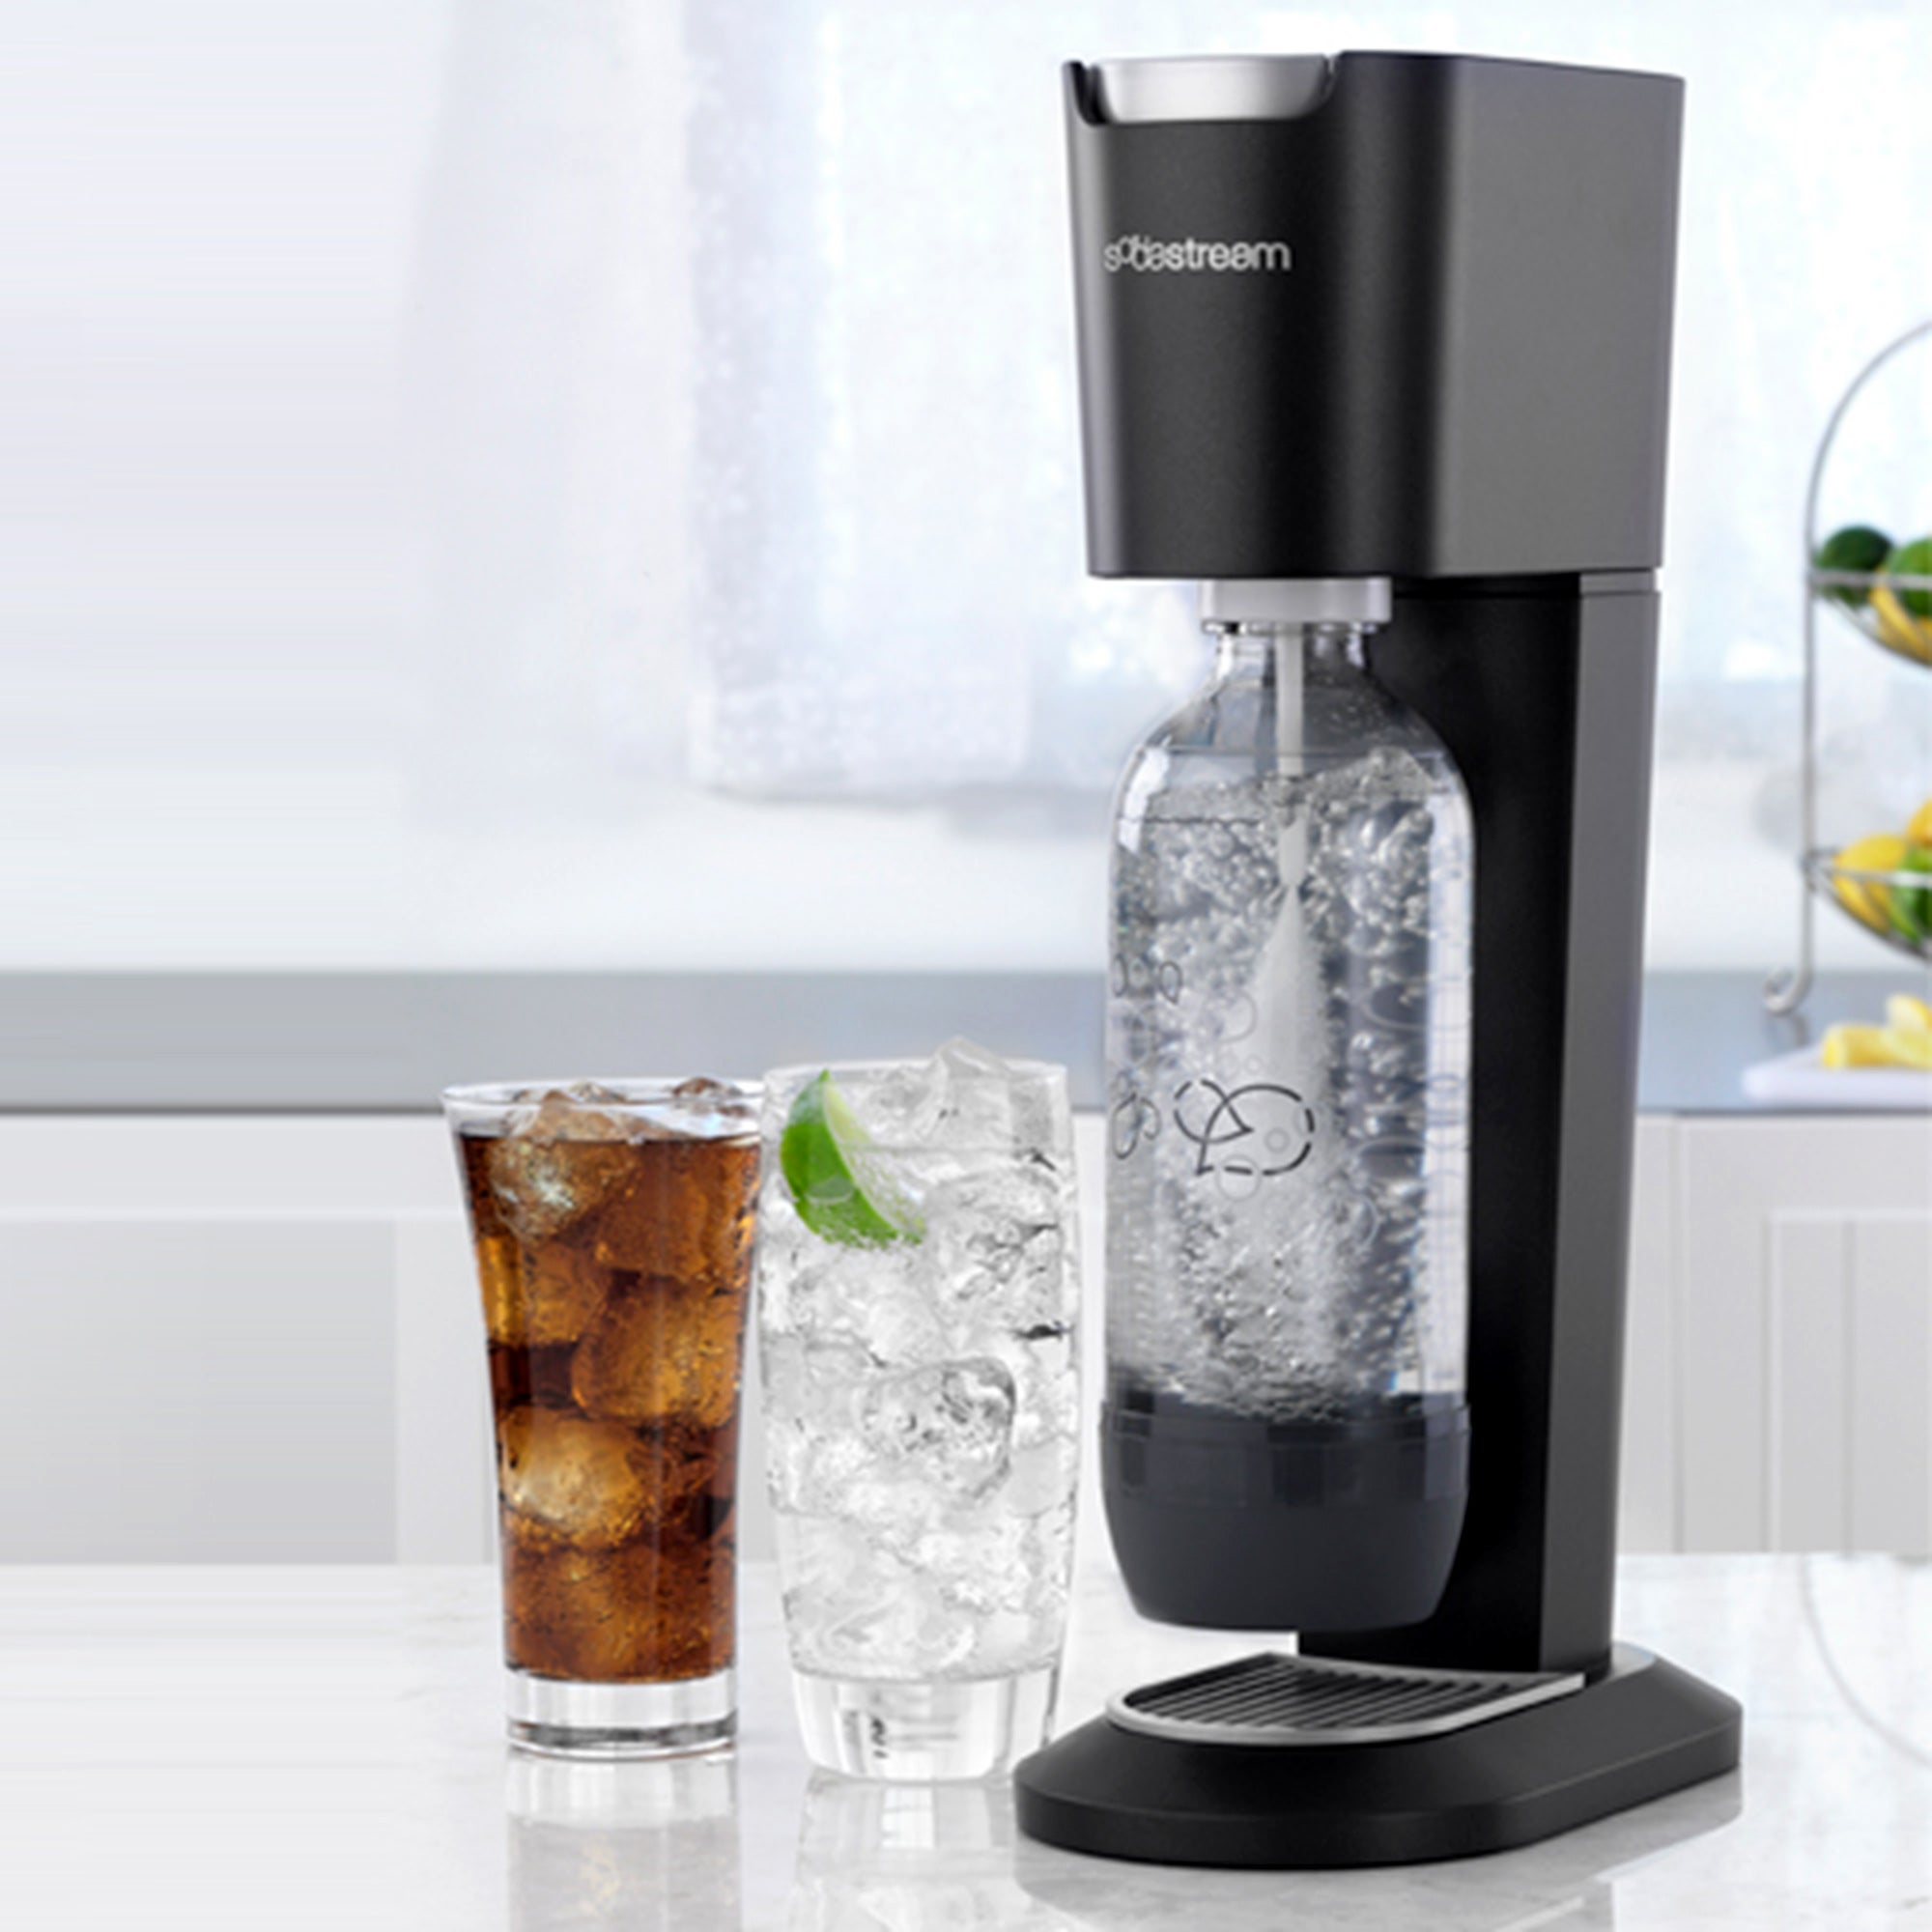 SodaStream Grey Genesis Drinks Maker